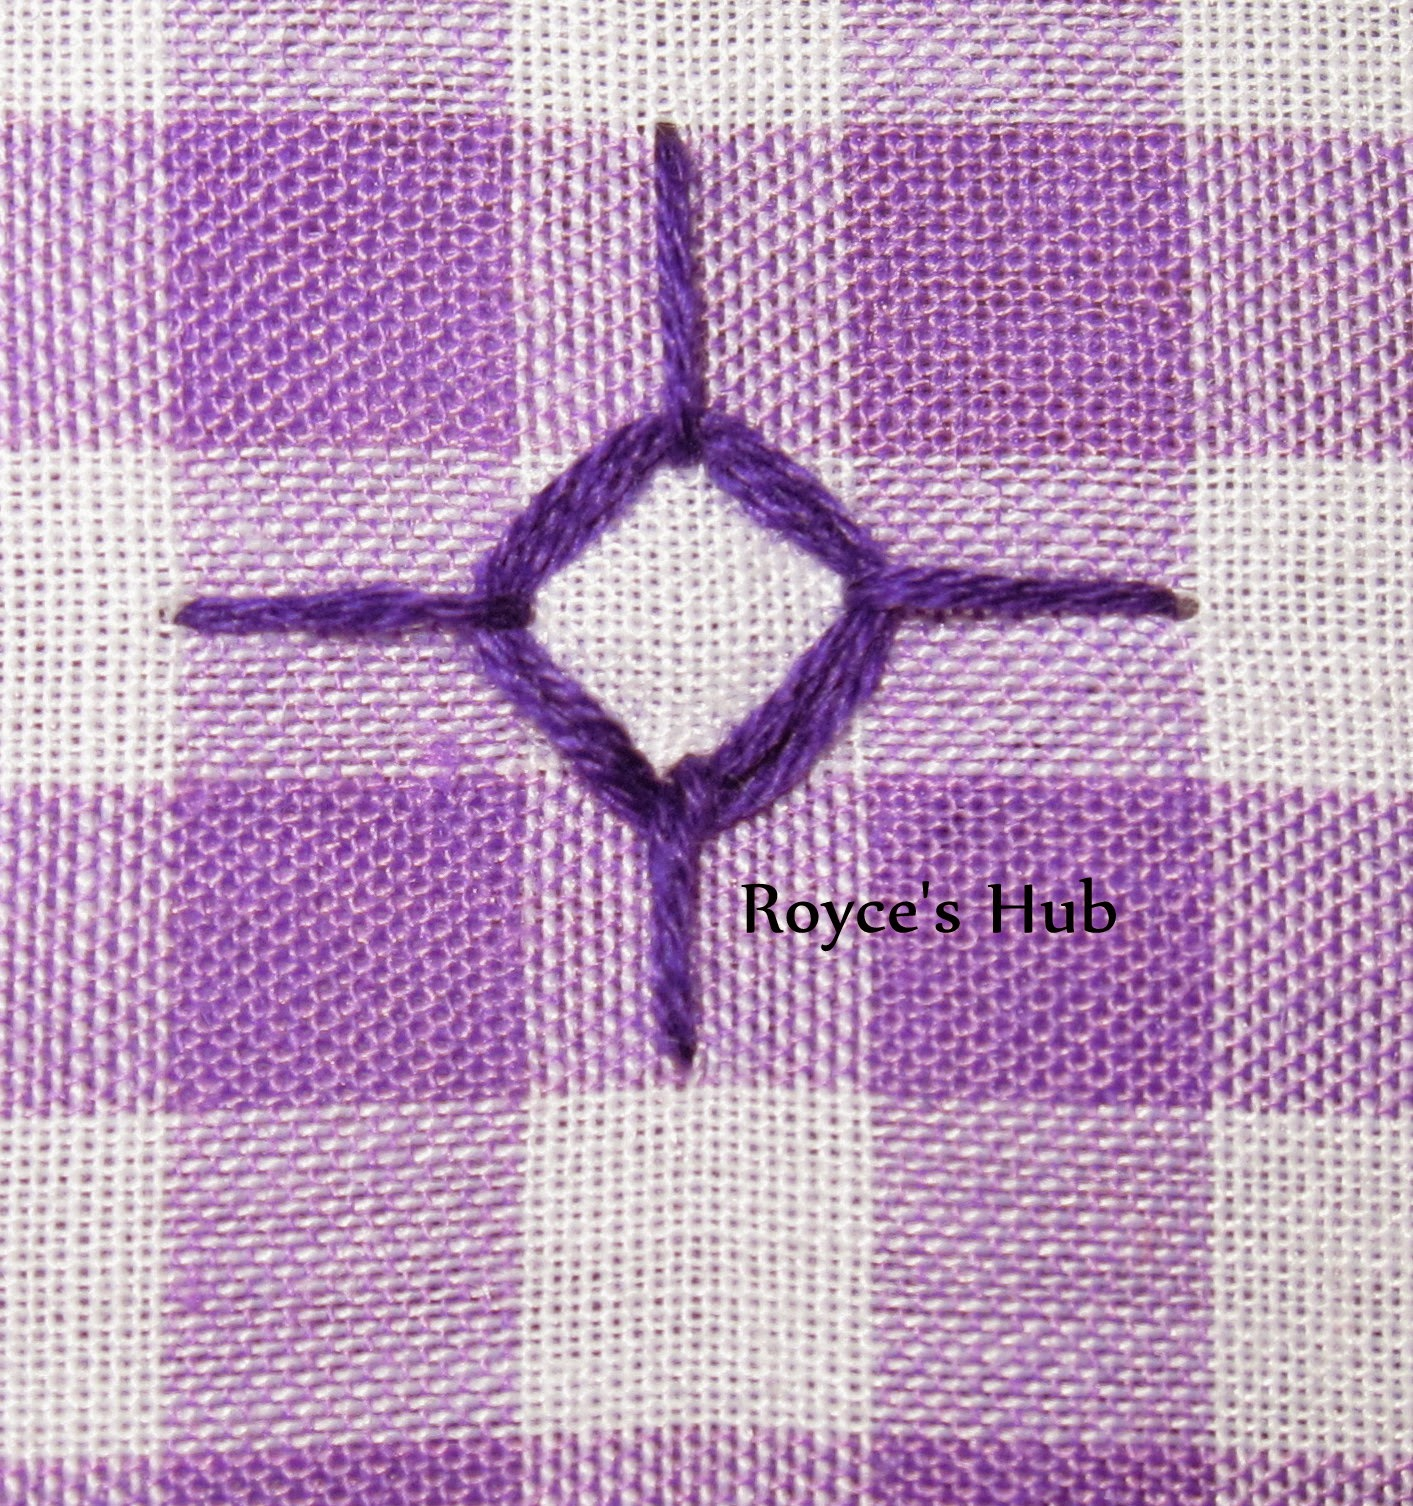 http://roycedavids.blogspot.ae/2014/01/gingham-embroidery-stitches-ii-woven.html